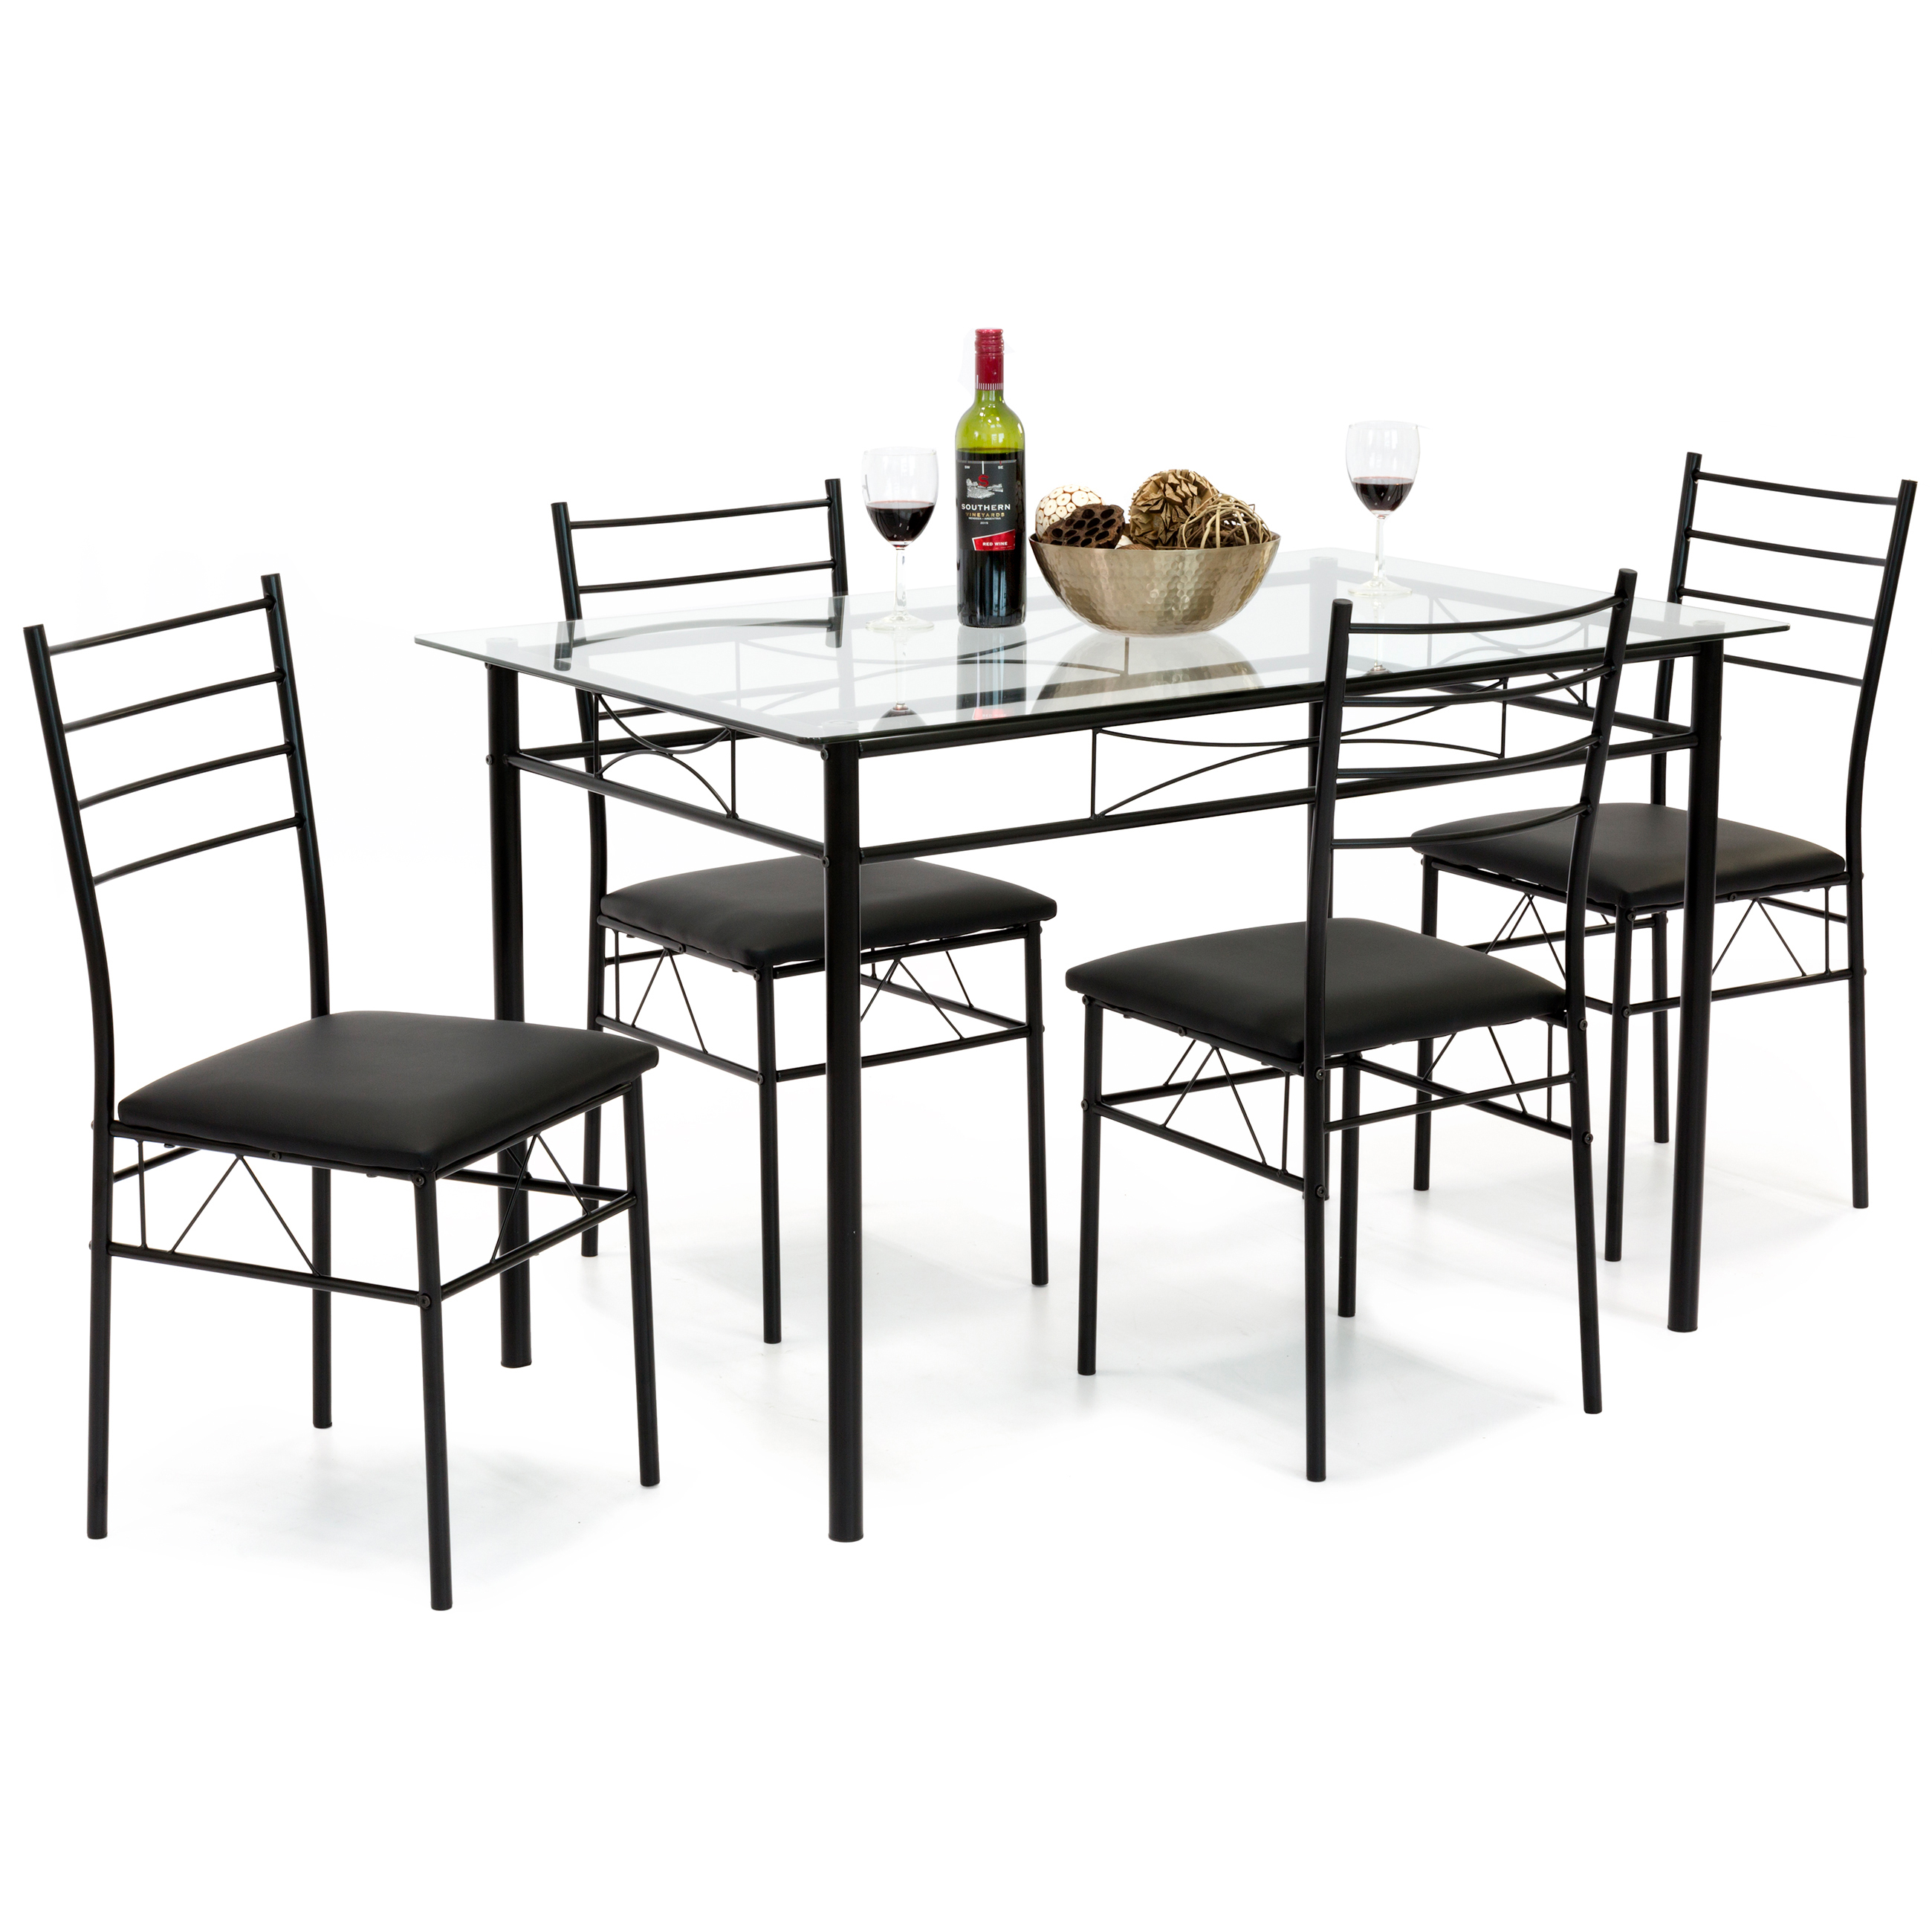 Best Choice Products Home 5-Piece Dining Table Set W/ Glass Table Top, 4 Chairs- Black